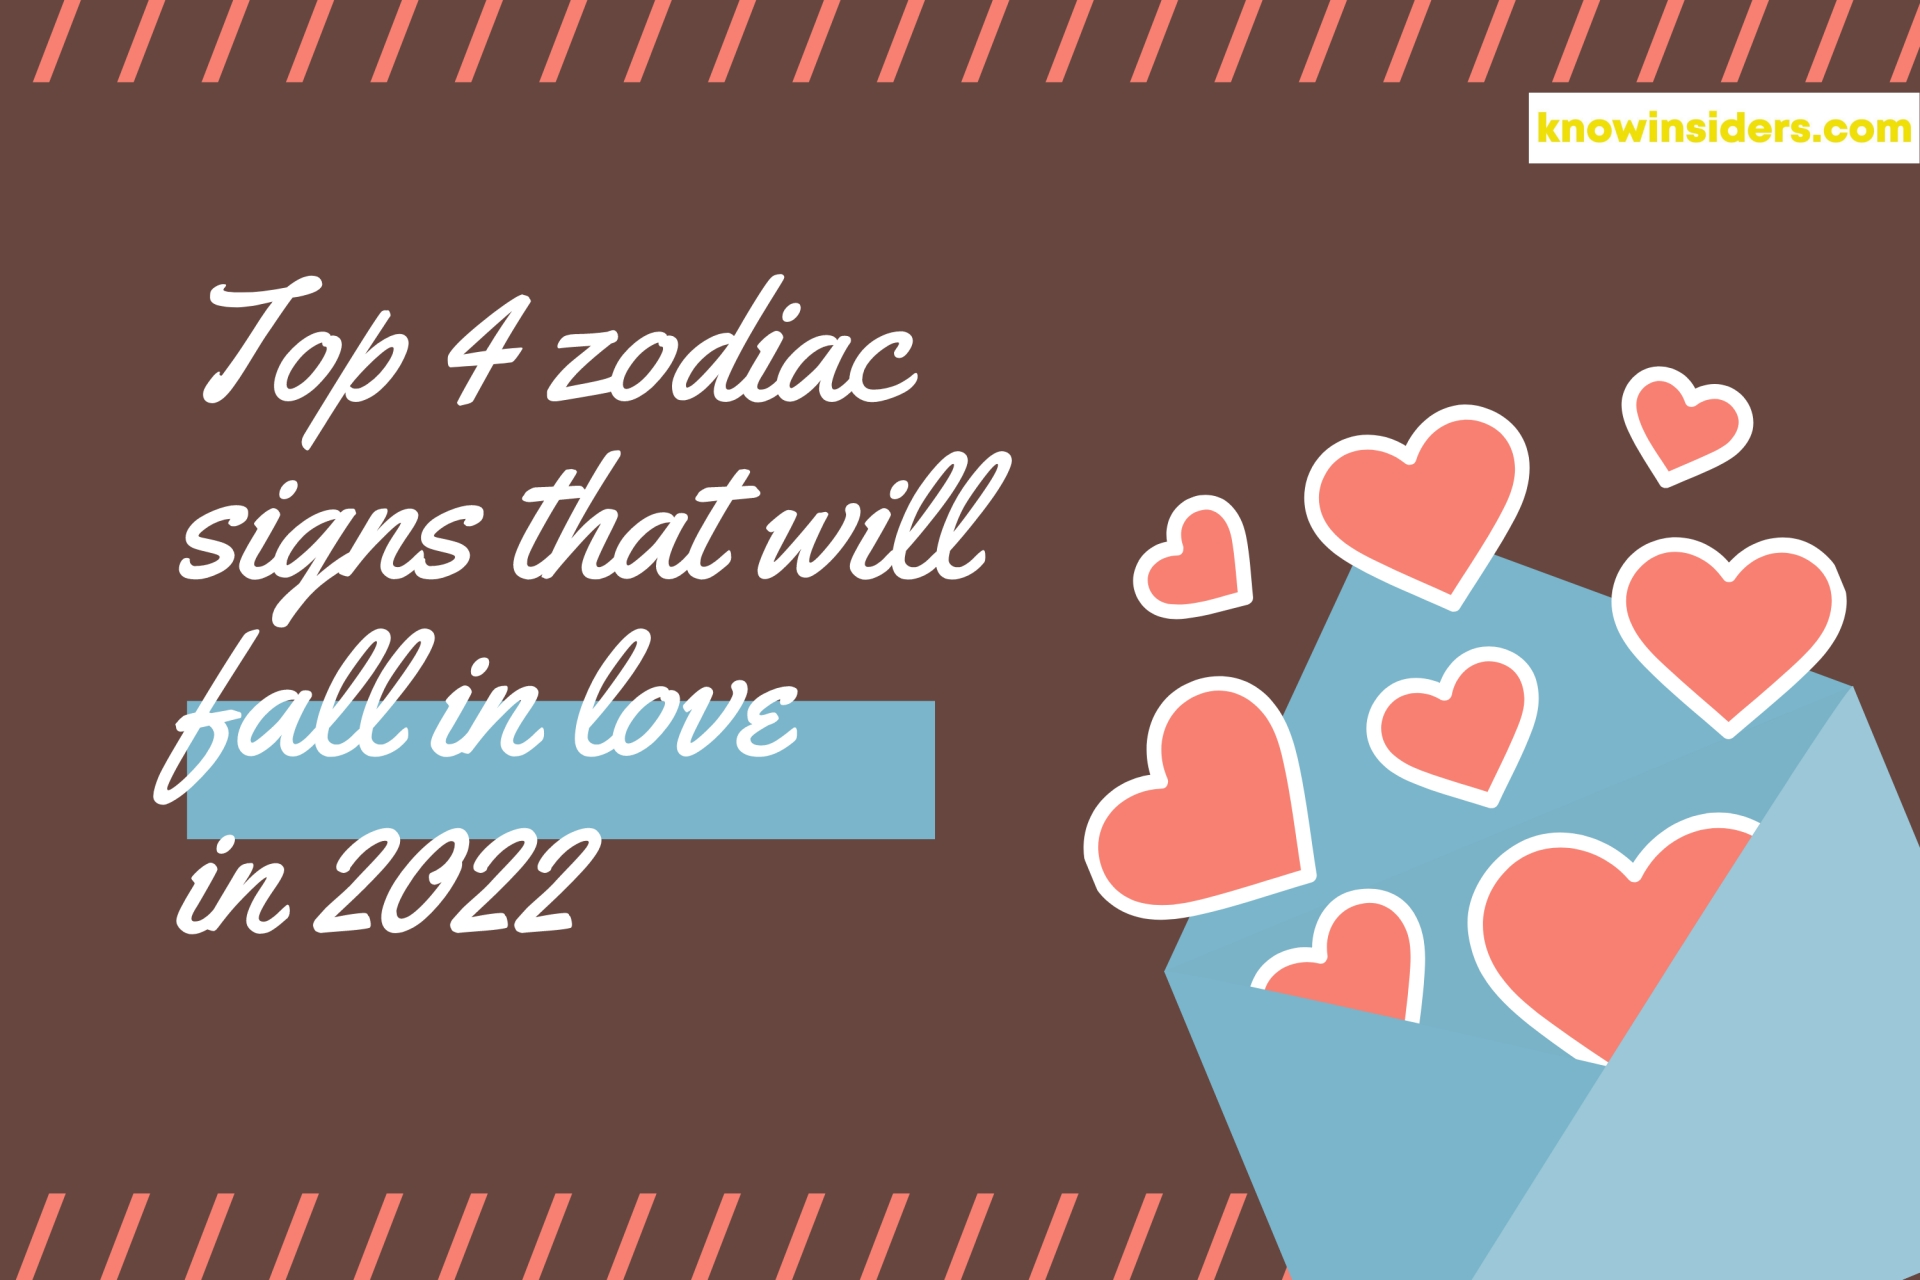 Top 4 Zodiac Signs That Will Fall In Love In 2022